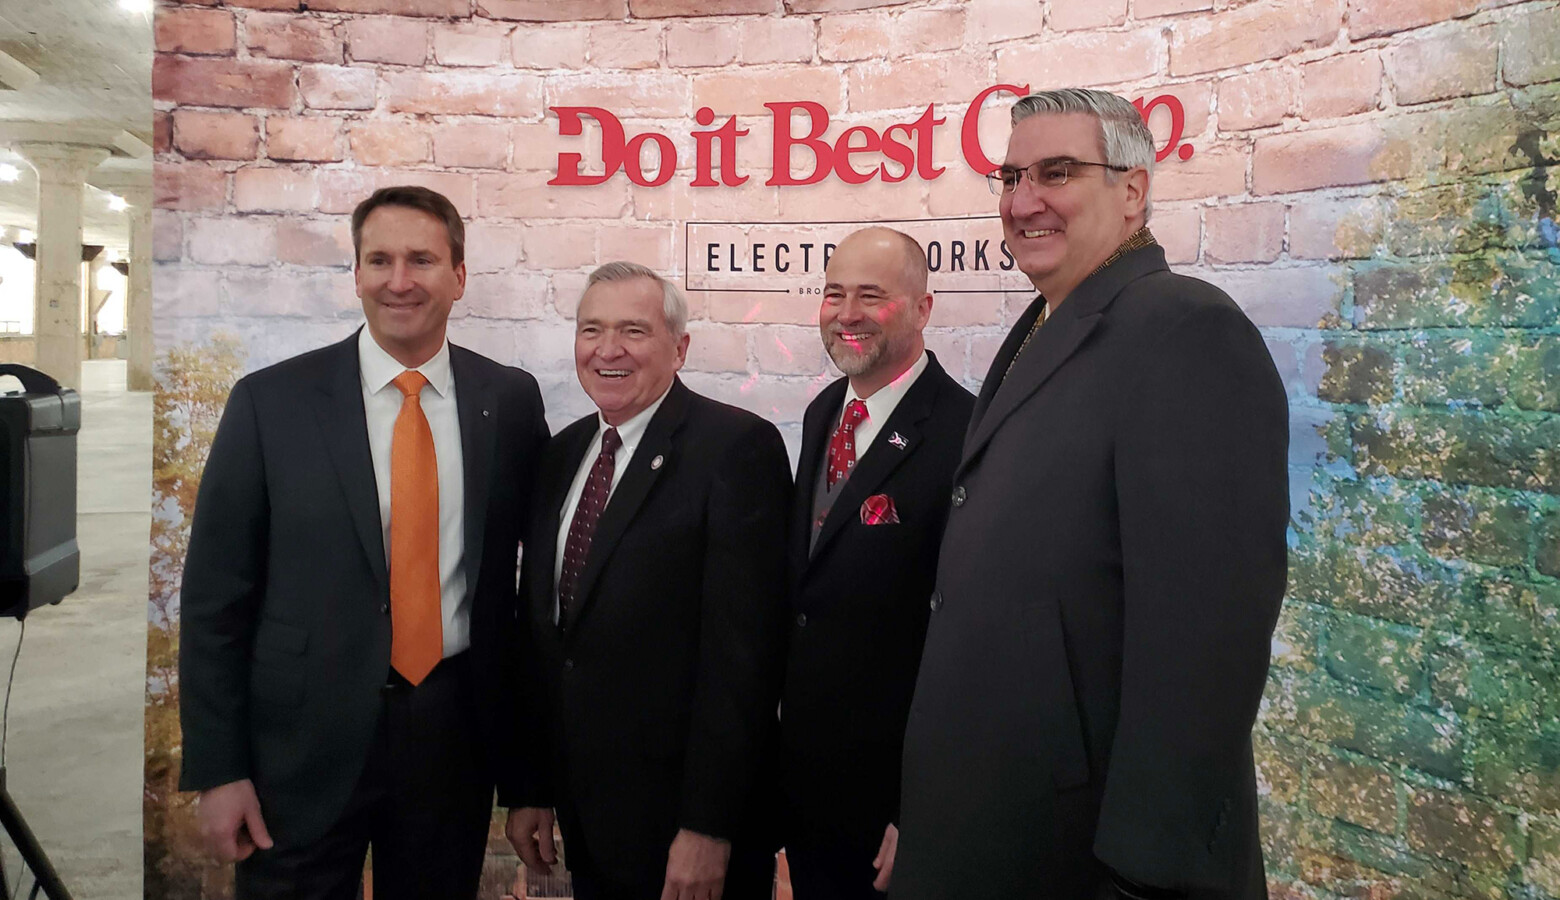 (Left to right) President and CEO Dan Starr, Fort Wayne Mayor Tom Henry, RTM Ventures partner Jeff Kingsbury and Gov. Eric Holcomb pose for a photo following the announcement. (Samantha Horton/IPB News)